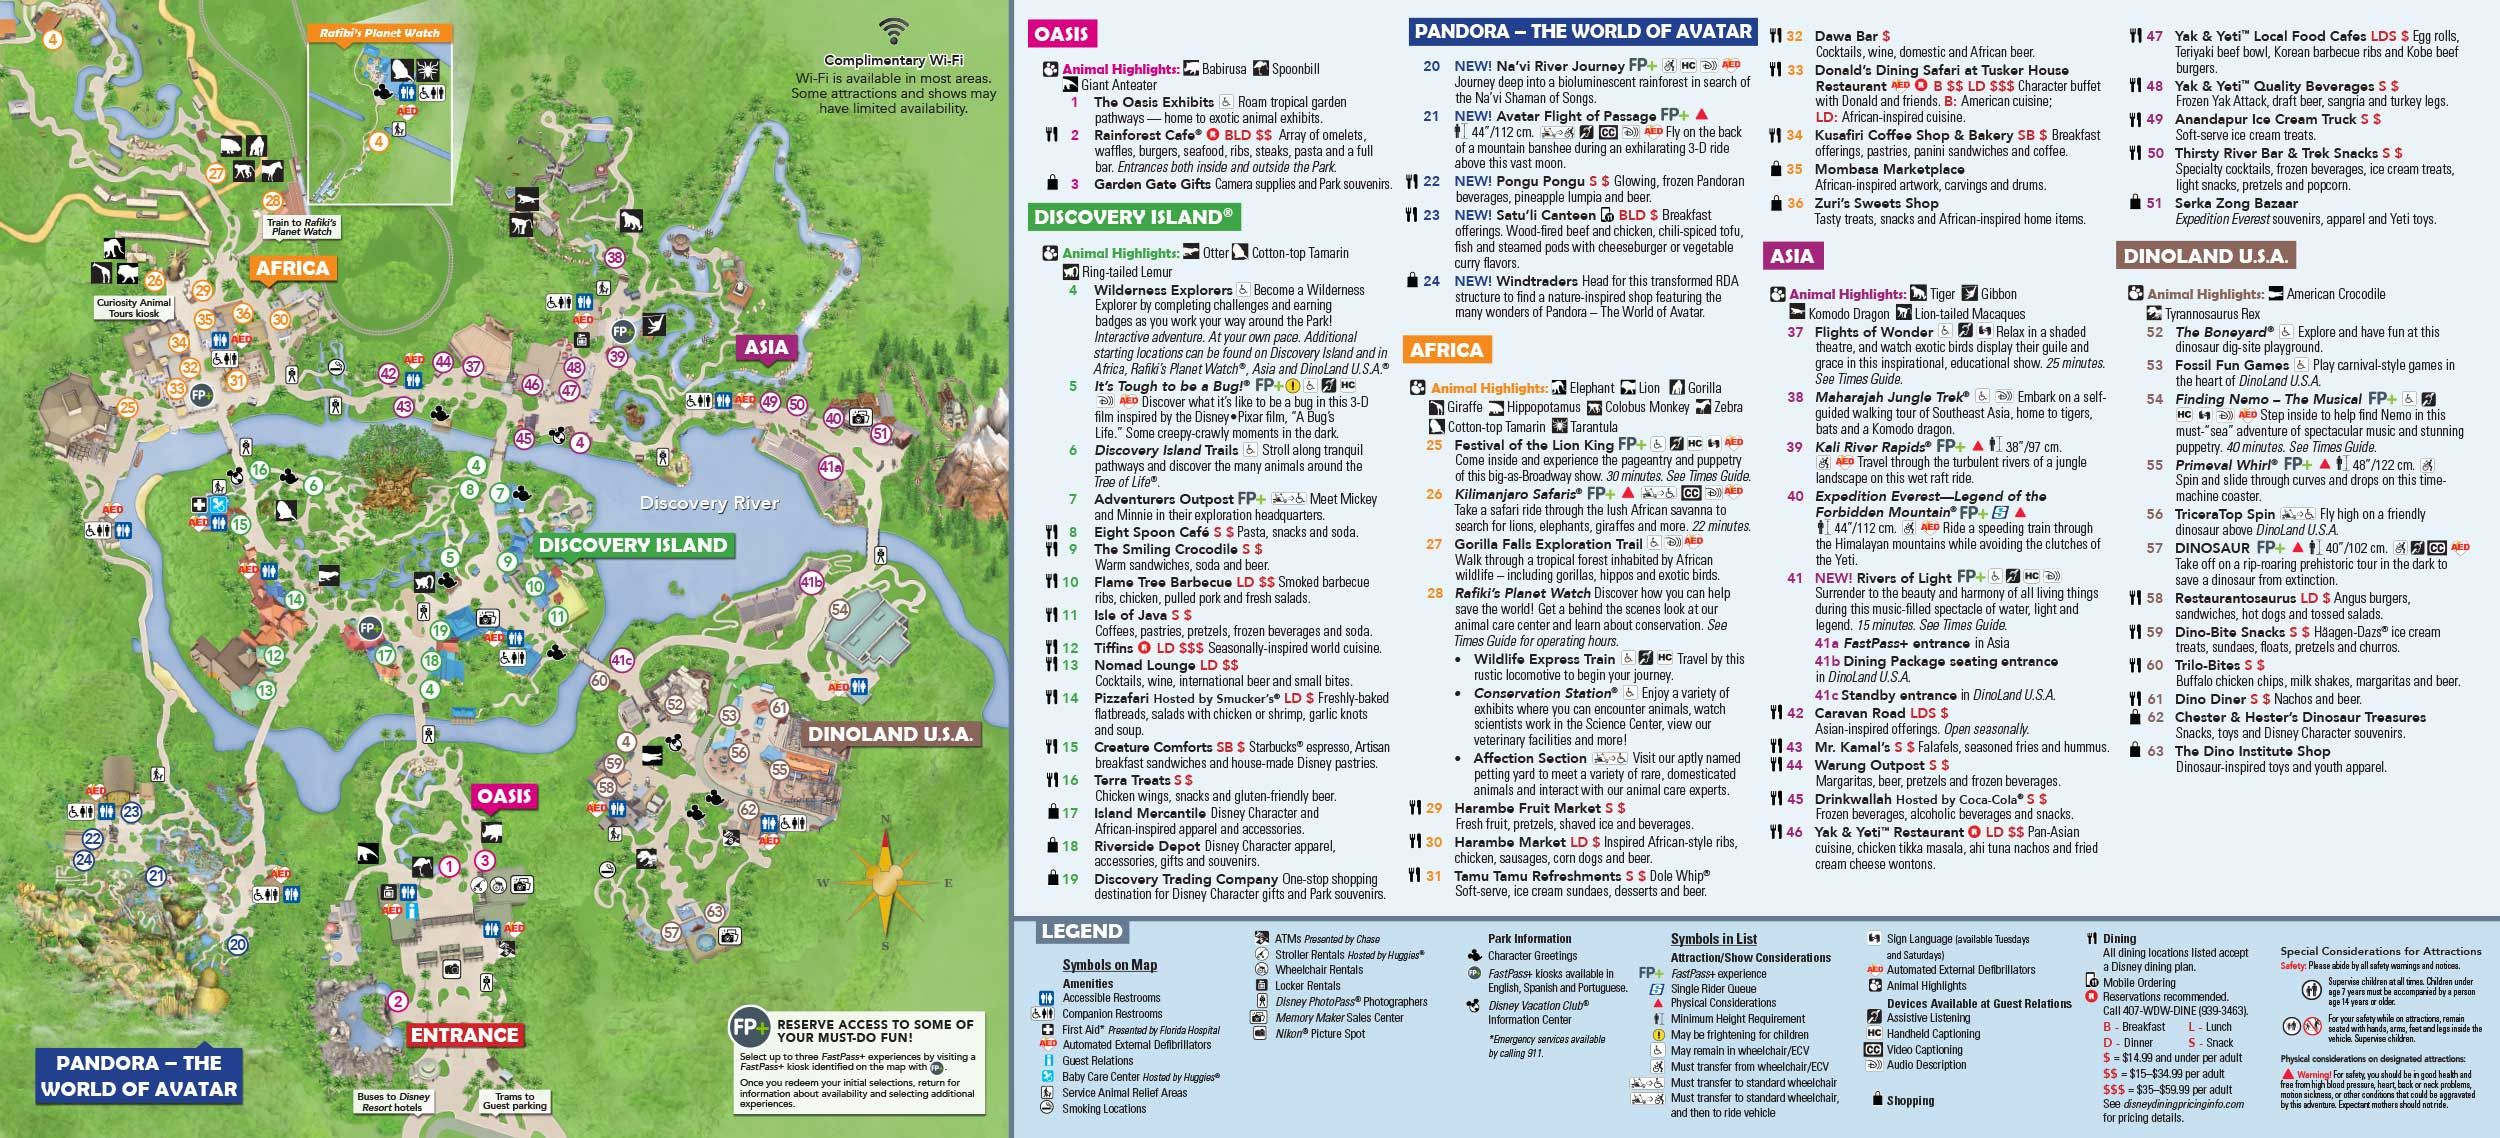 Animal Kingdom Itinerary | disney world in 2019 | Disney ... on map of last night, map of restrepo, map of first landing, map of sea world san antonio, map of butler chain of lakes, map of arthur, map of universal studios orlando, map of nickelodeon suites resort, map of tammy, map of serenity, map of downtown disney, map of wizarding world of harry potter, map of espn wide world of sports complex, map of epcot, map of the kentucky derby, map of disney world, map of blizzard beach, map of disney village, map of typhoon lagoon, map of hollywood studios,